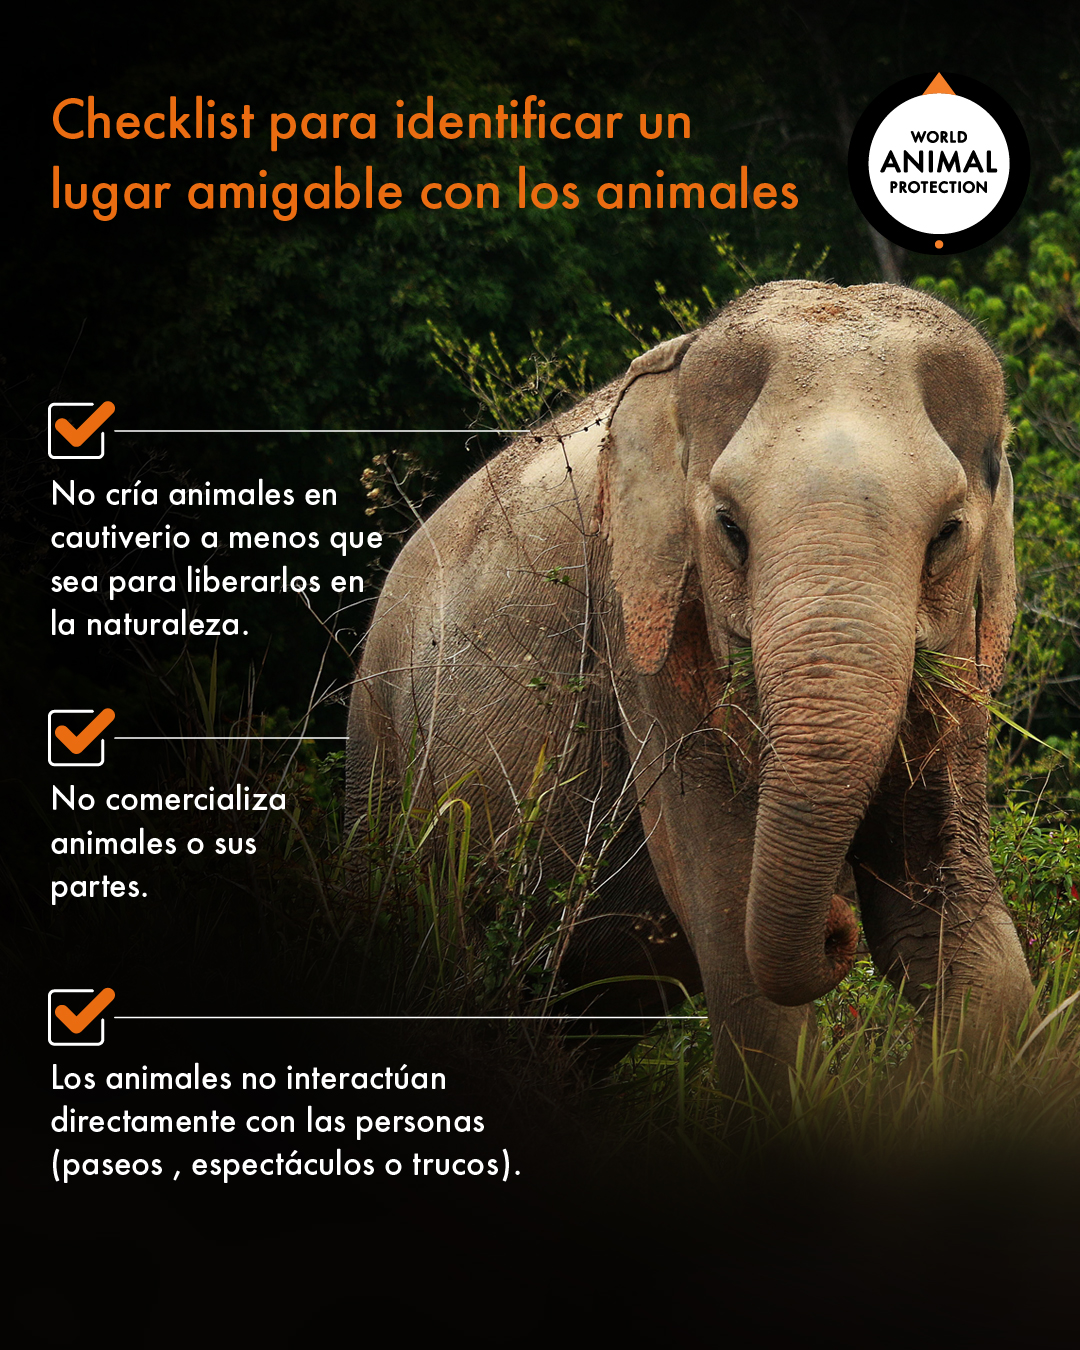 checklist lugar amigable con animales 01